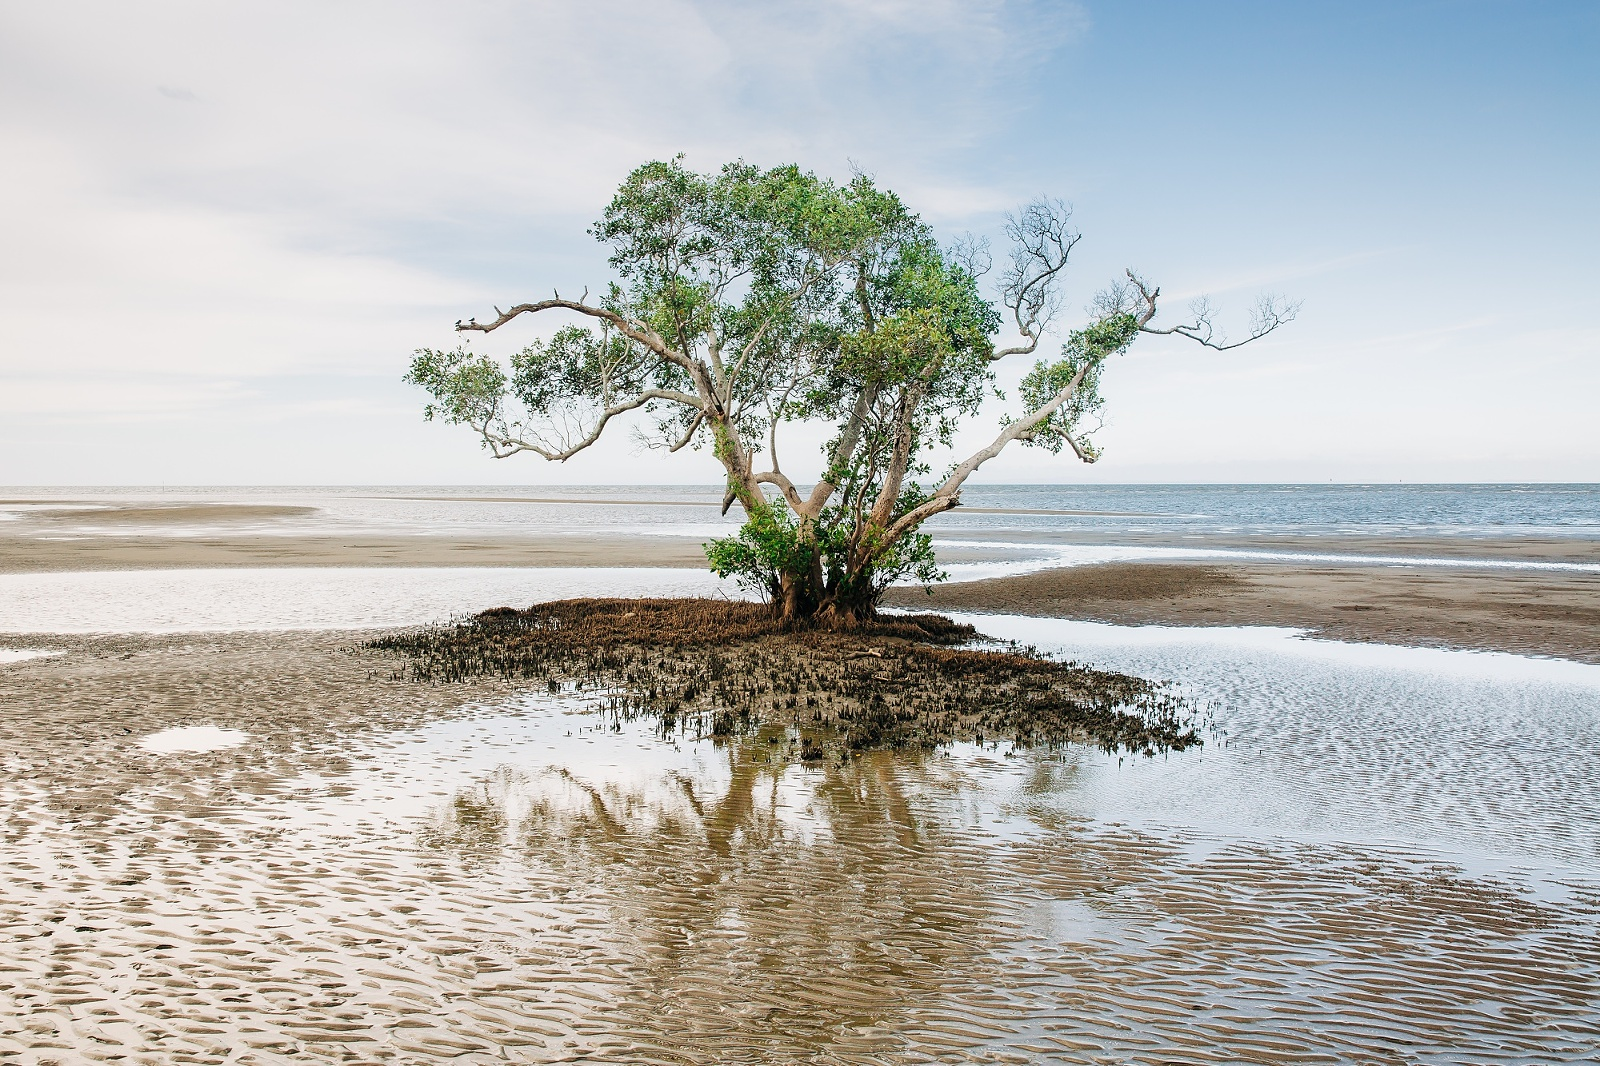 photograph Nudgee Beach 5 - Escape